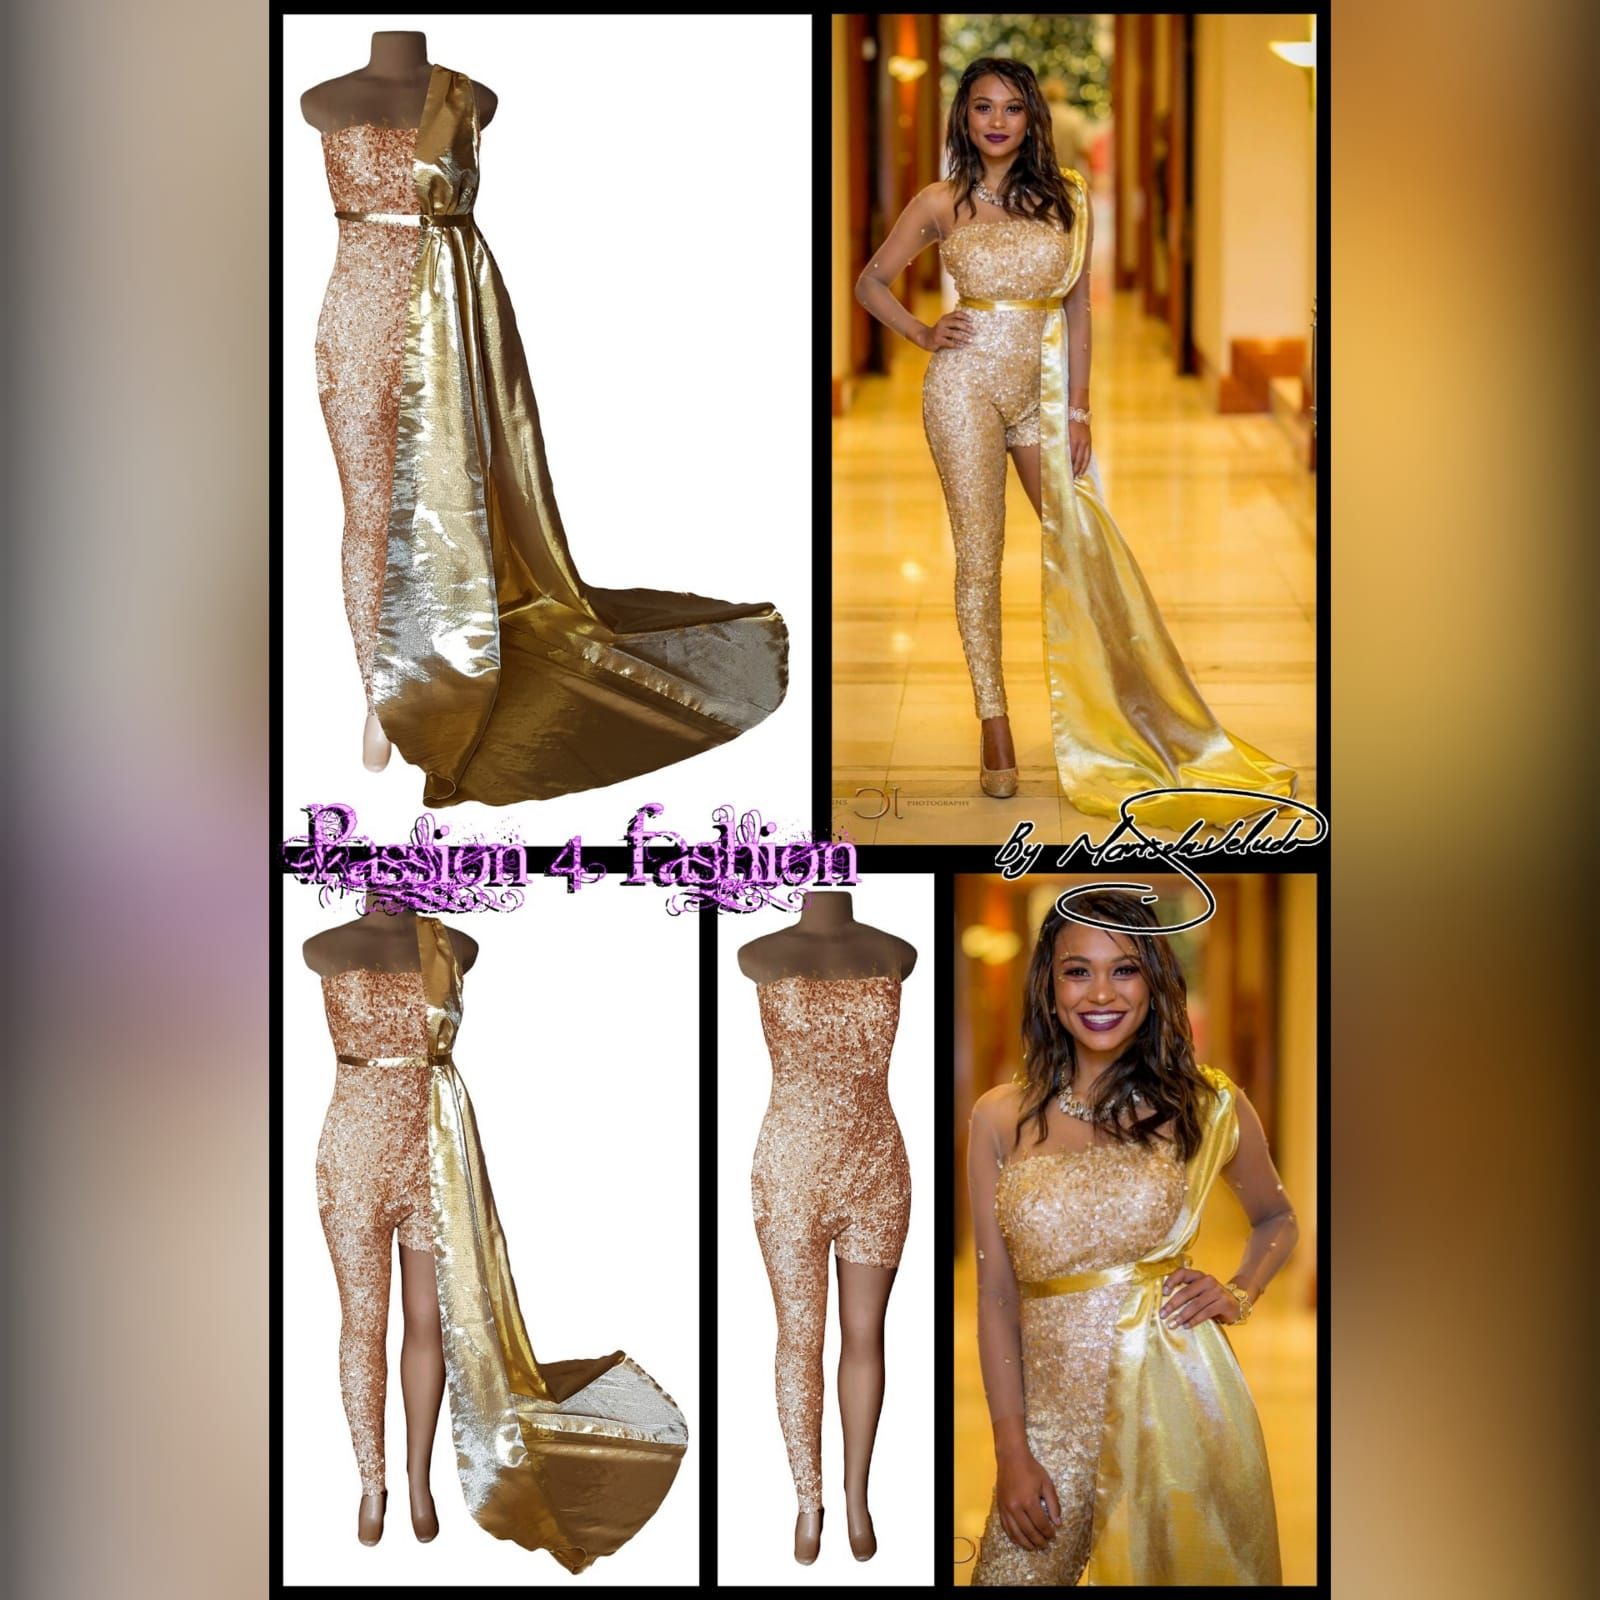 Gold sequins evening wear bodysuit 6 gold sequins evening wear bodysuit with an illusion neckline and sleeves, detailed with gold beads. With a long and short leg. Detachable side gold train.